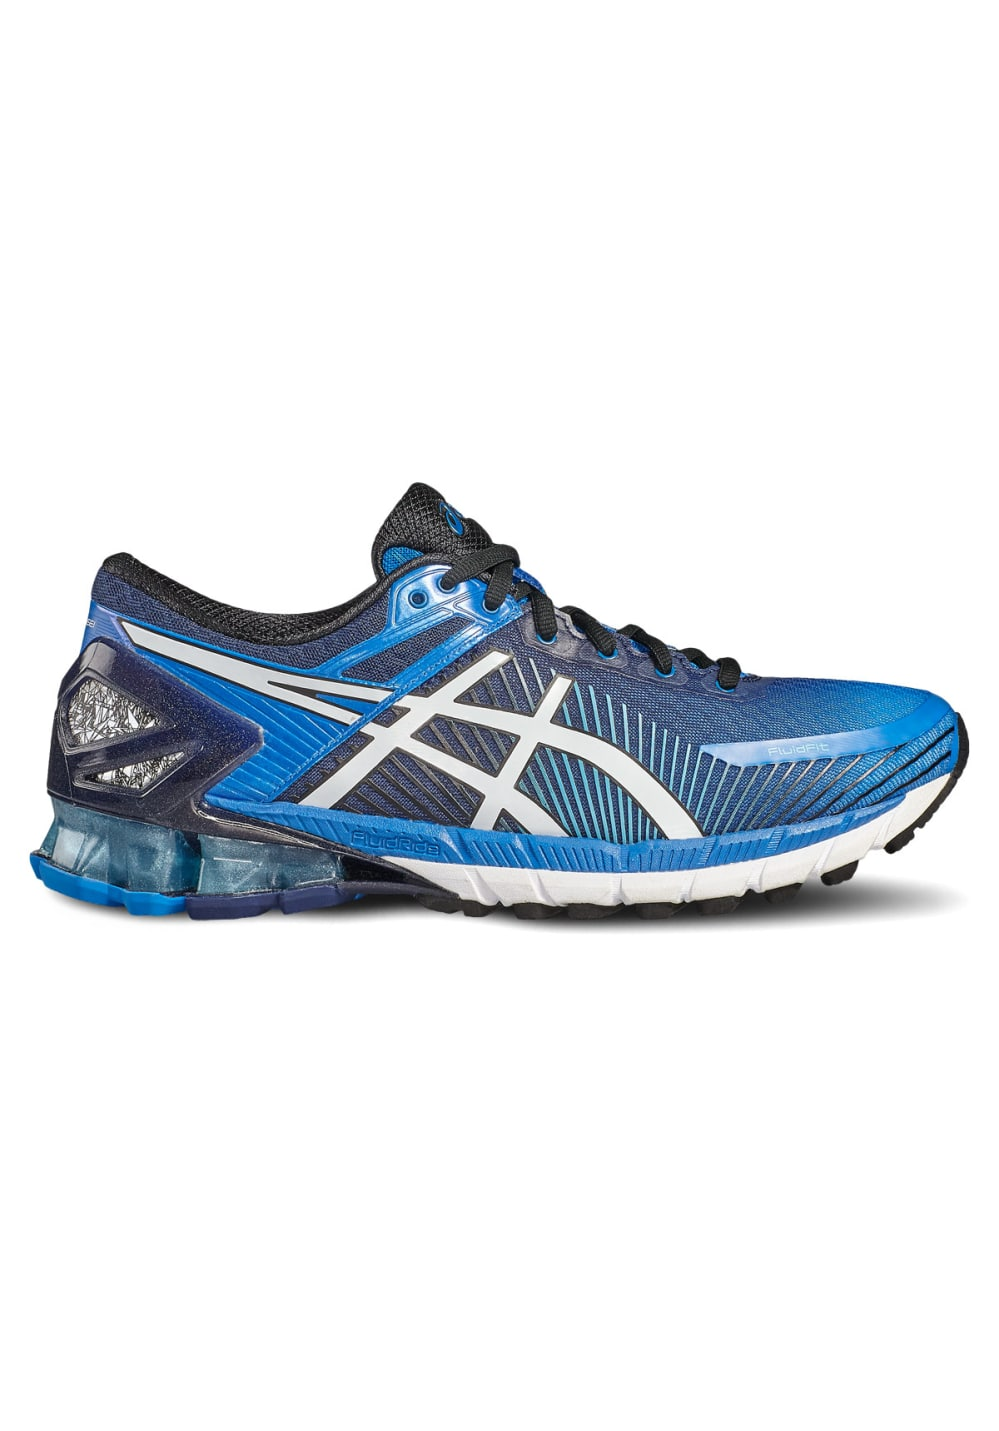 new arrival 925fc 3c2a5 ASICS GEL-Kinsei 6 - Running shoes for Men - Grey